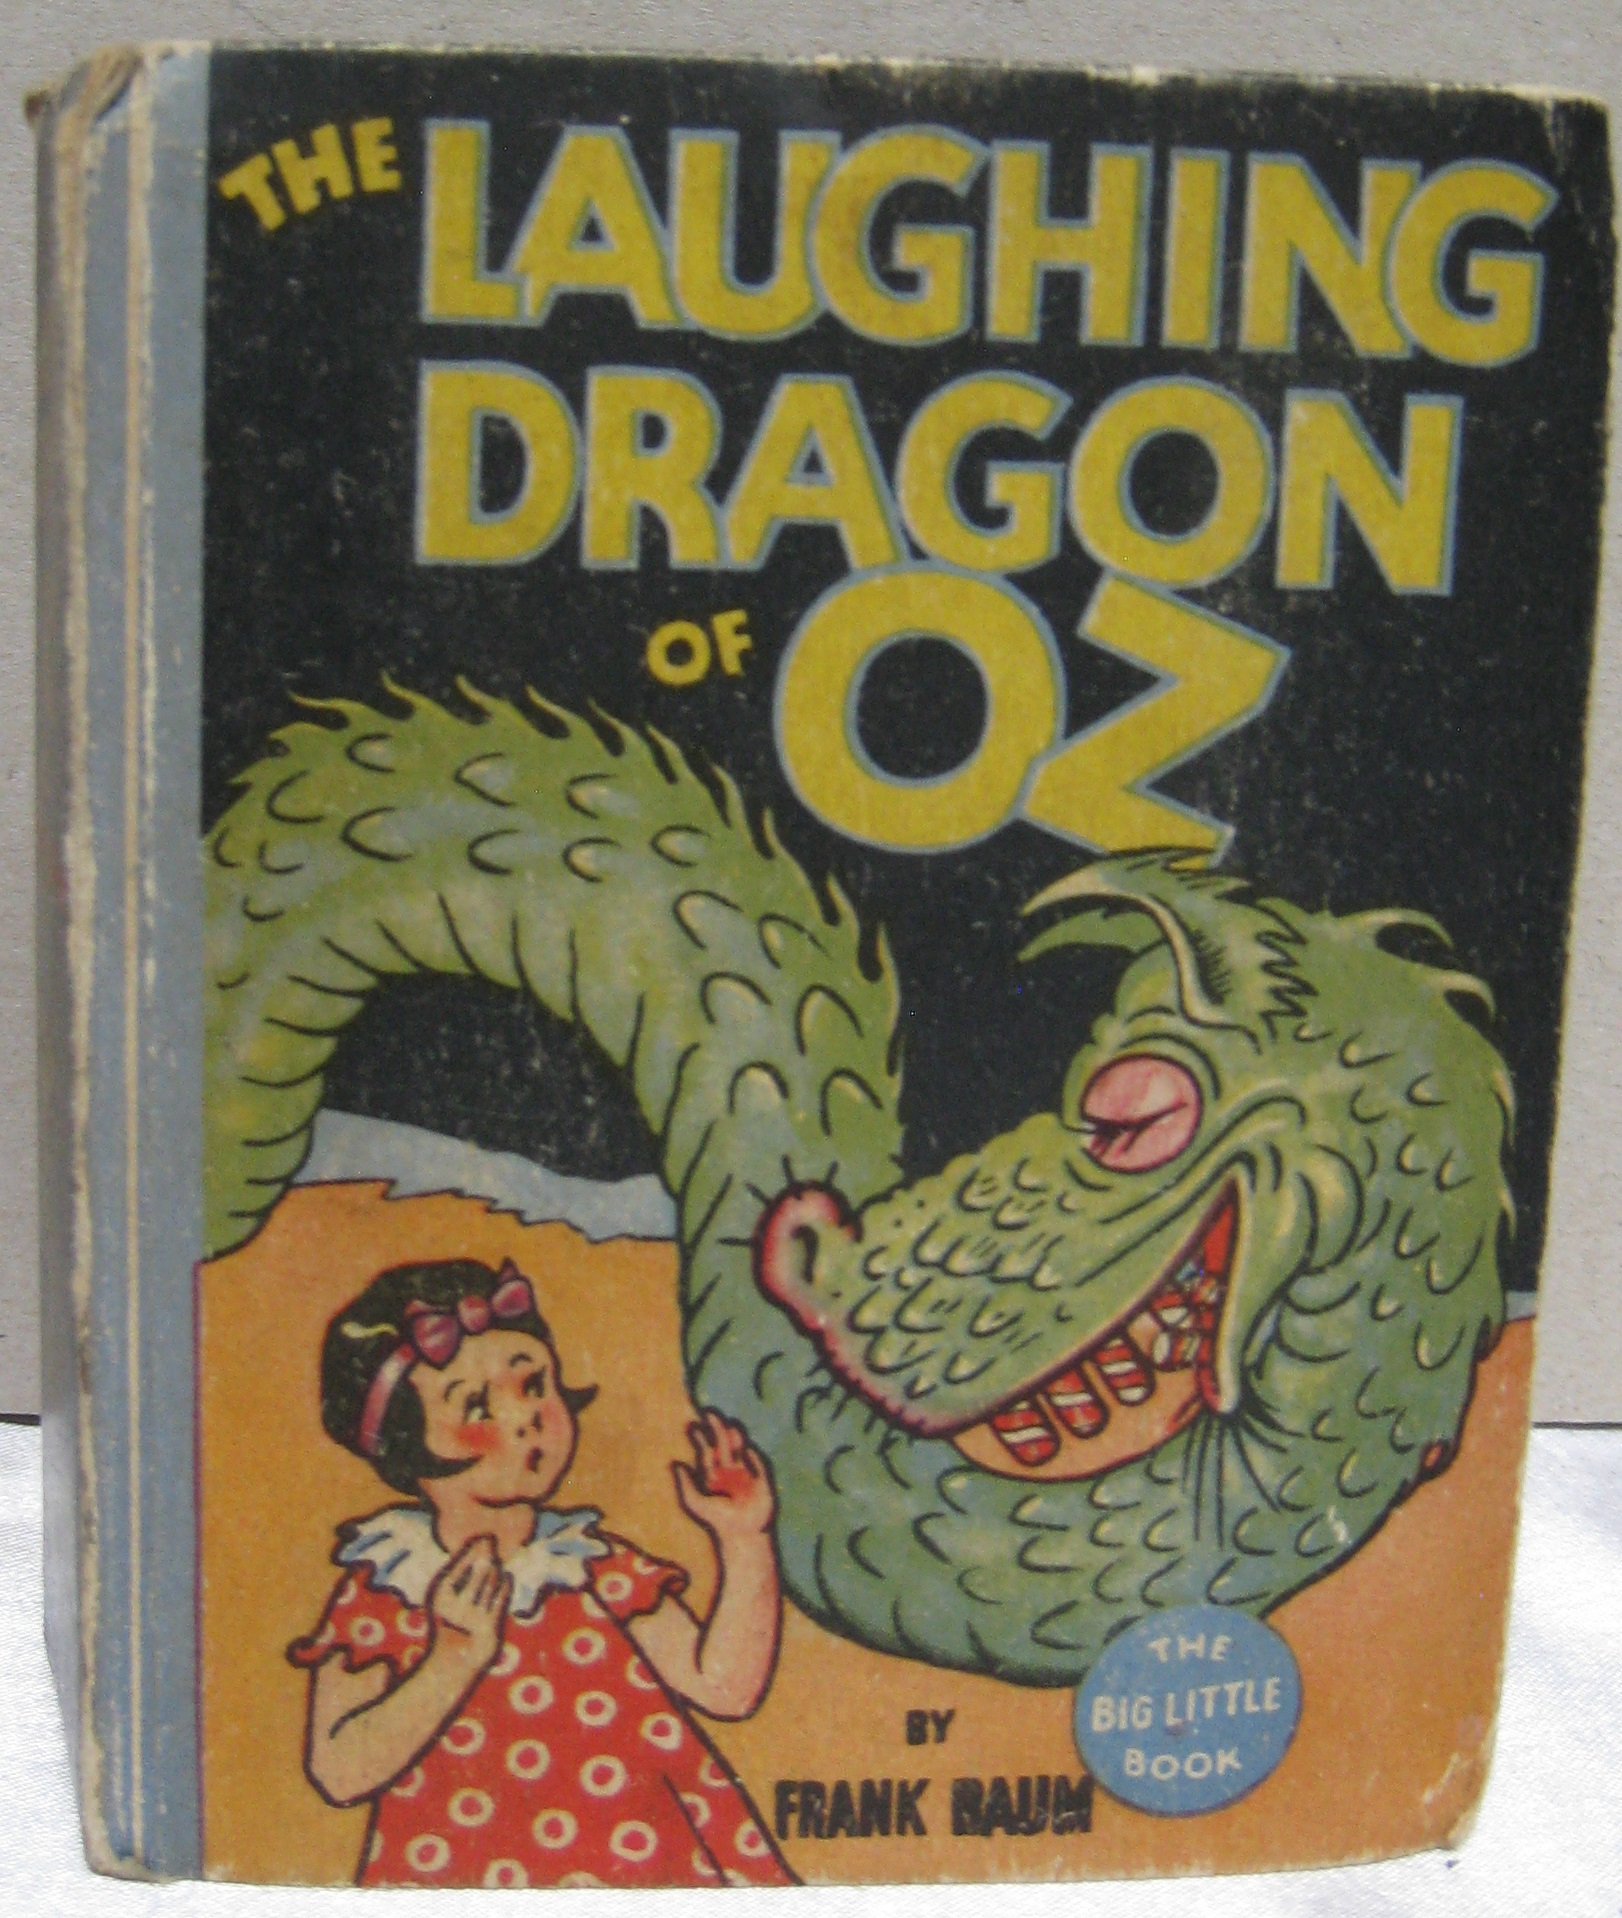 The Laughing Dragon of Oz: Frank Baum